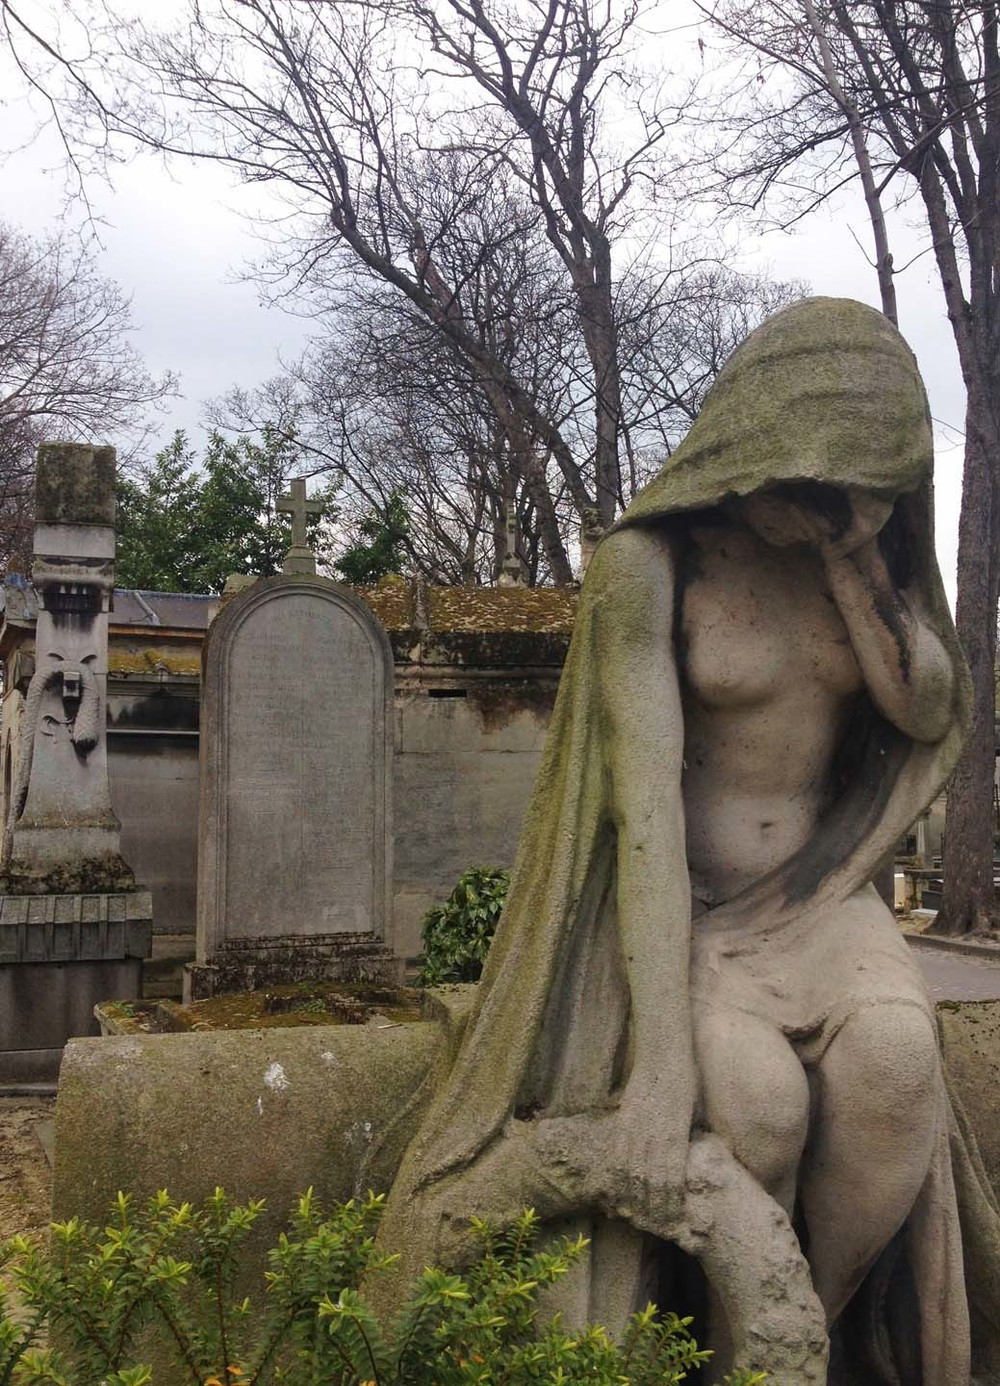 A woman mourns, Cimetière de Montmartre, Paris